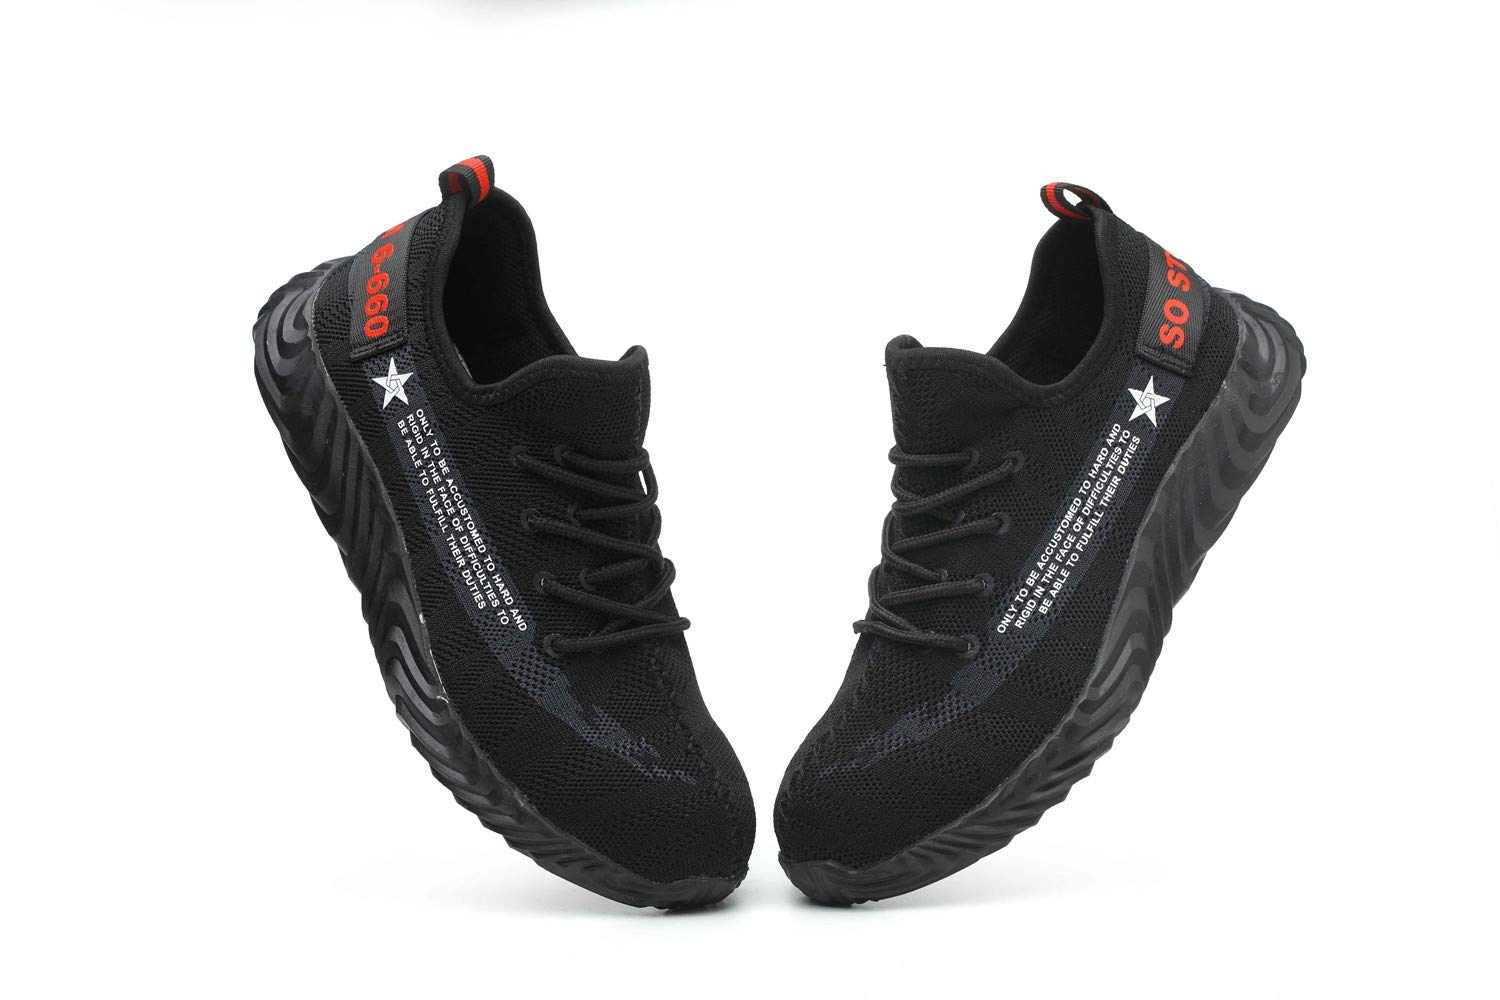 Work Shoes for Men and Women Safety Shoes for Women Non-slip Working Shoes Industrial & Construction Work Trainer Footwear by AiKim (Image #3)